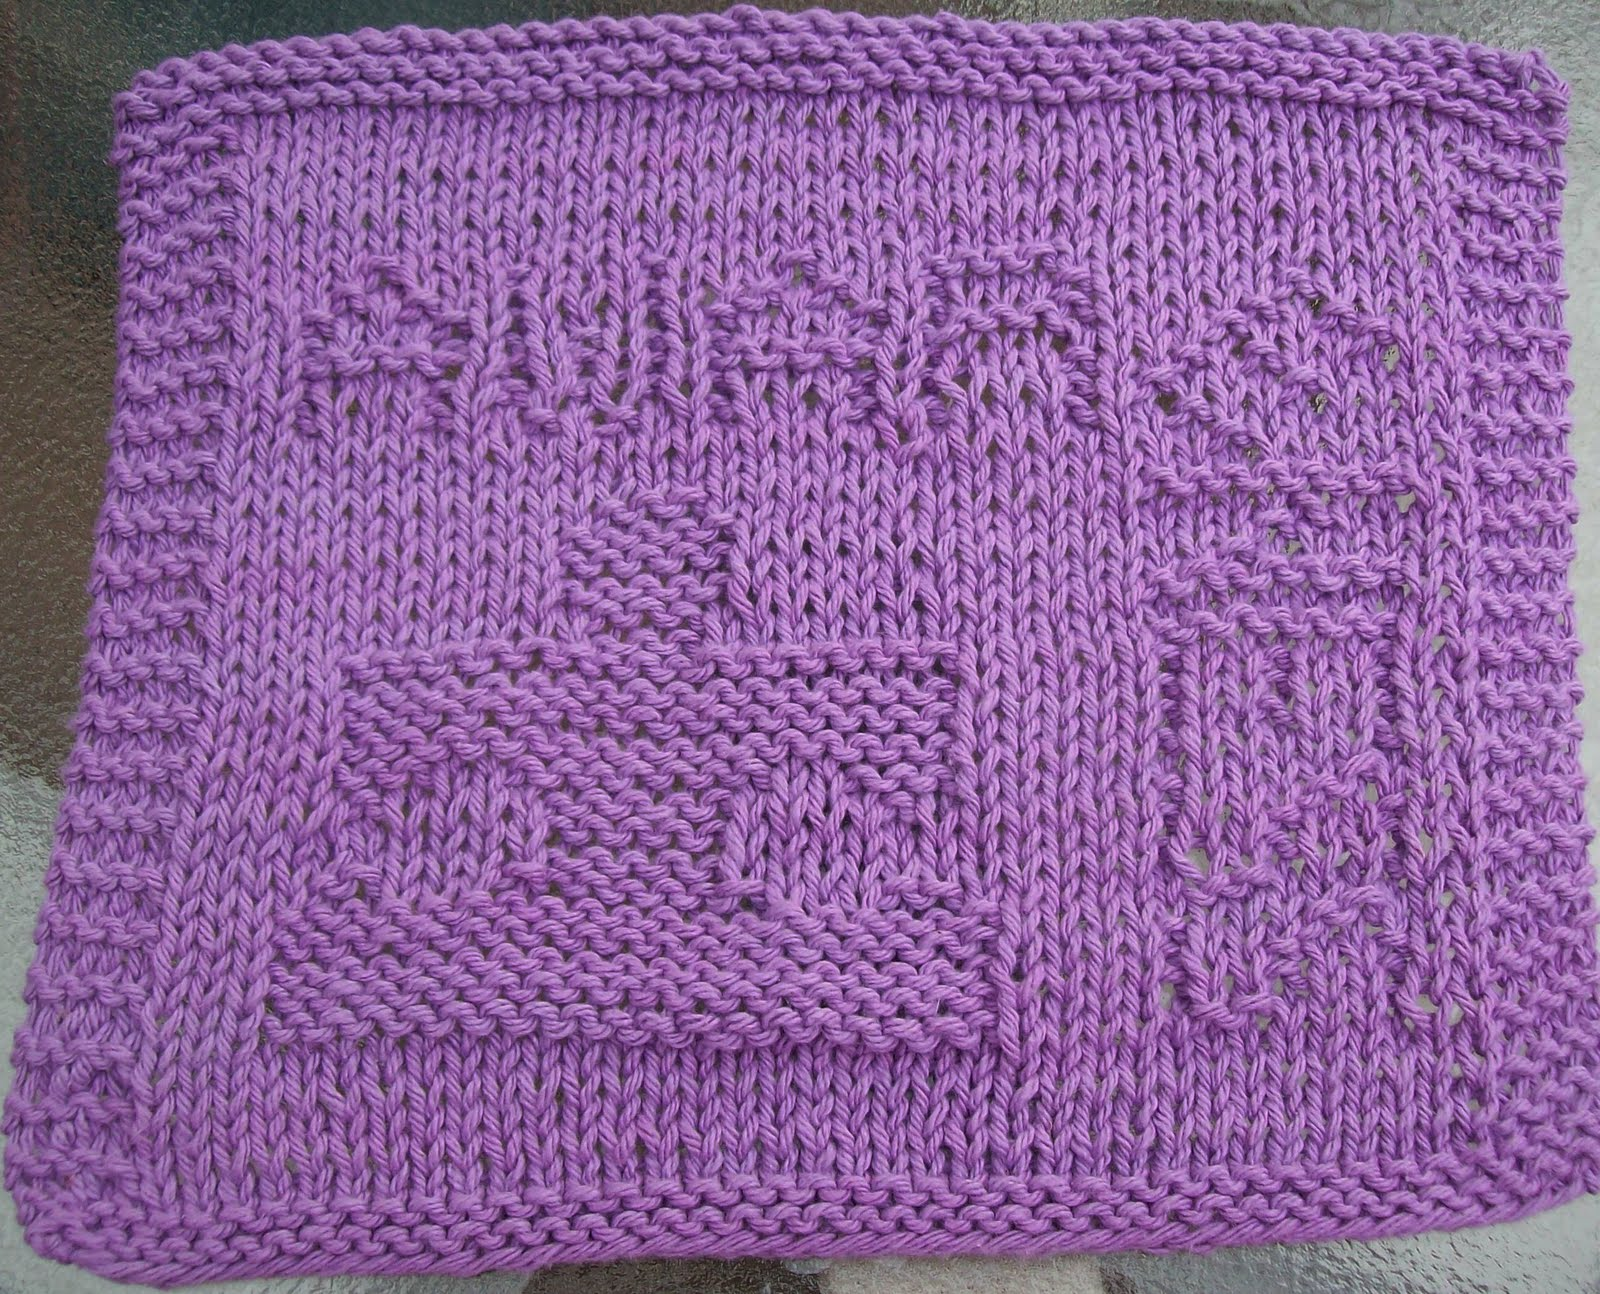 Knit Dishcloths Free Patterns : DigKnitty Designs: Autism Awareness * Free* Knit Dishcloth Pattern